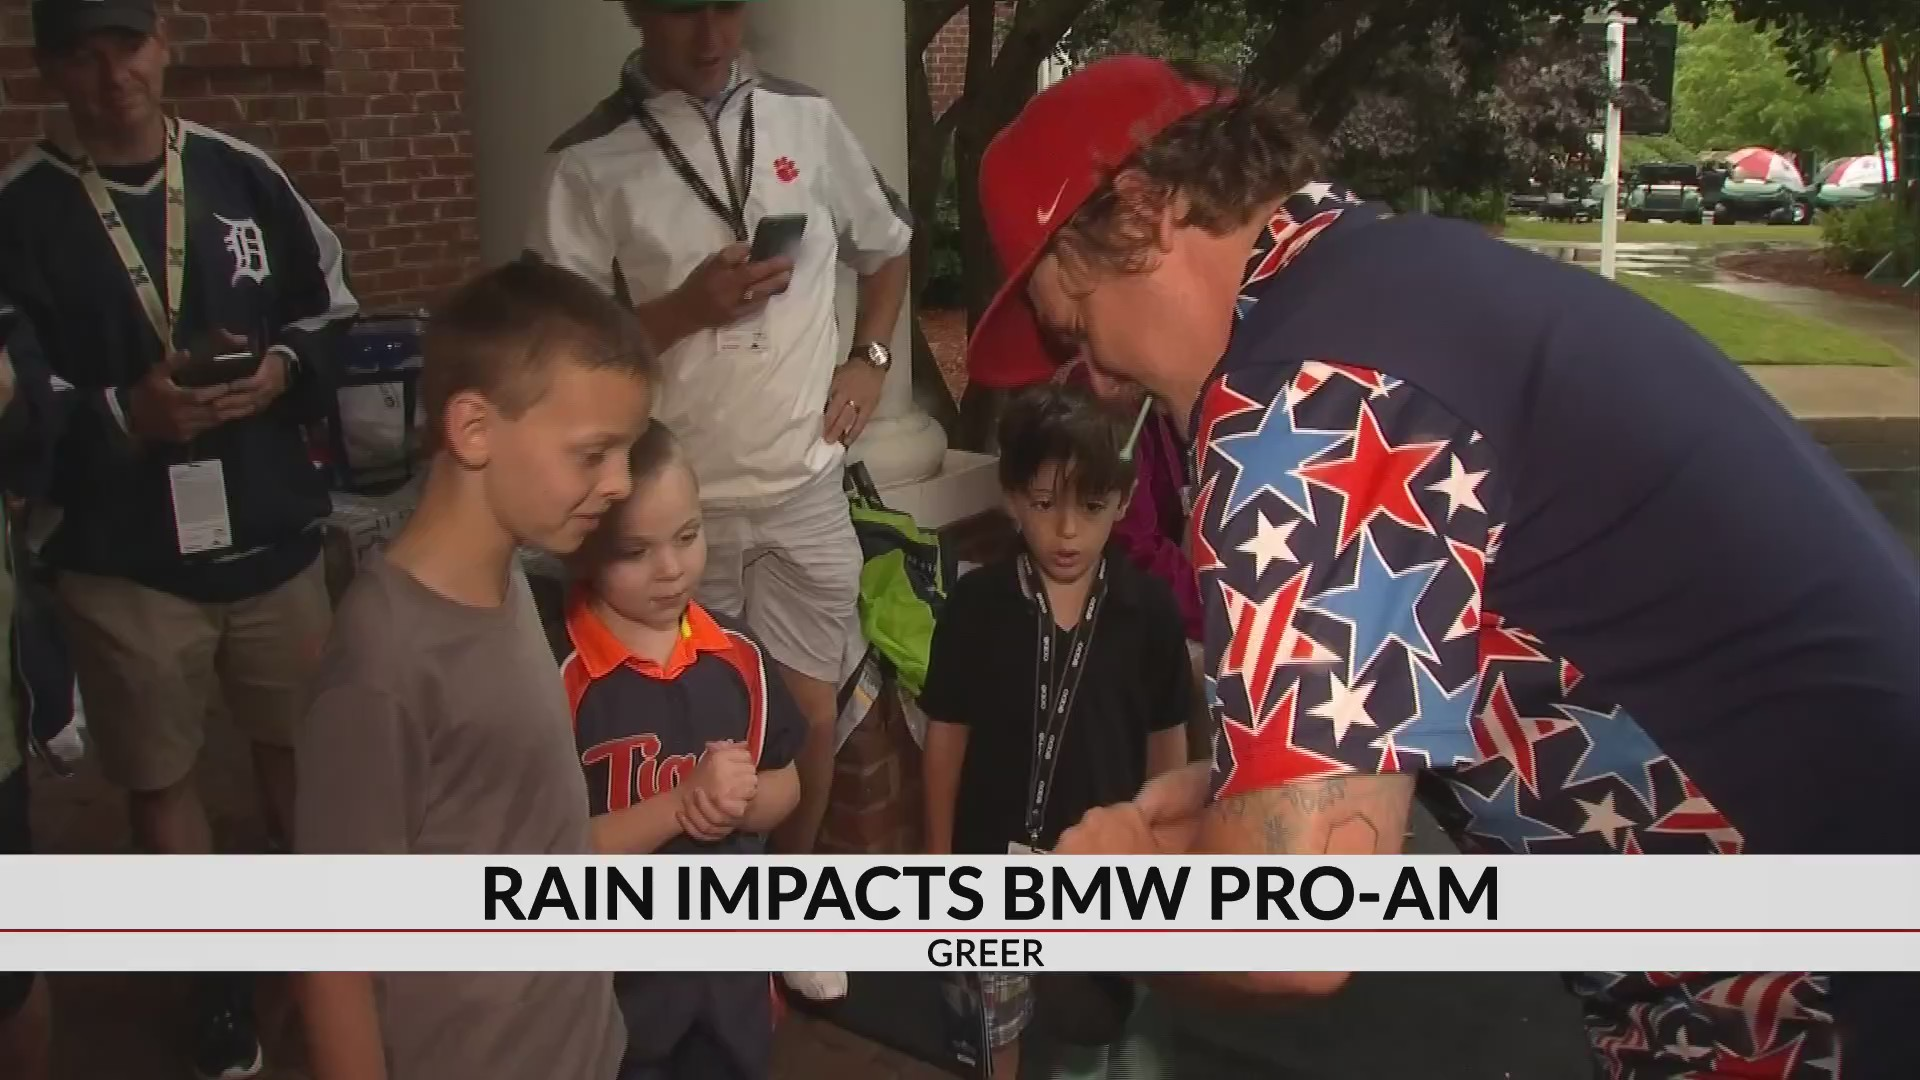 Heavy rains cause delays for BMW Charity Pro-Am